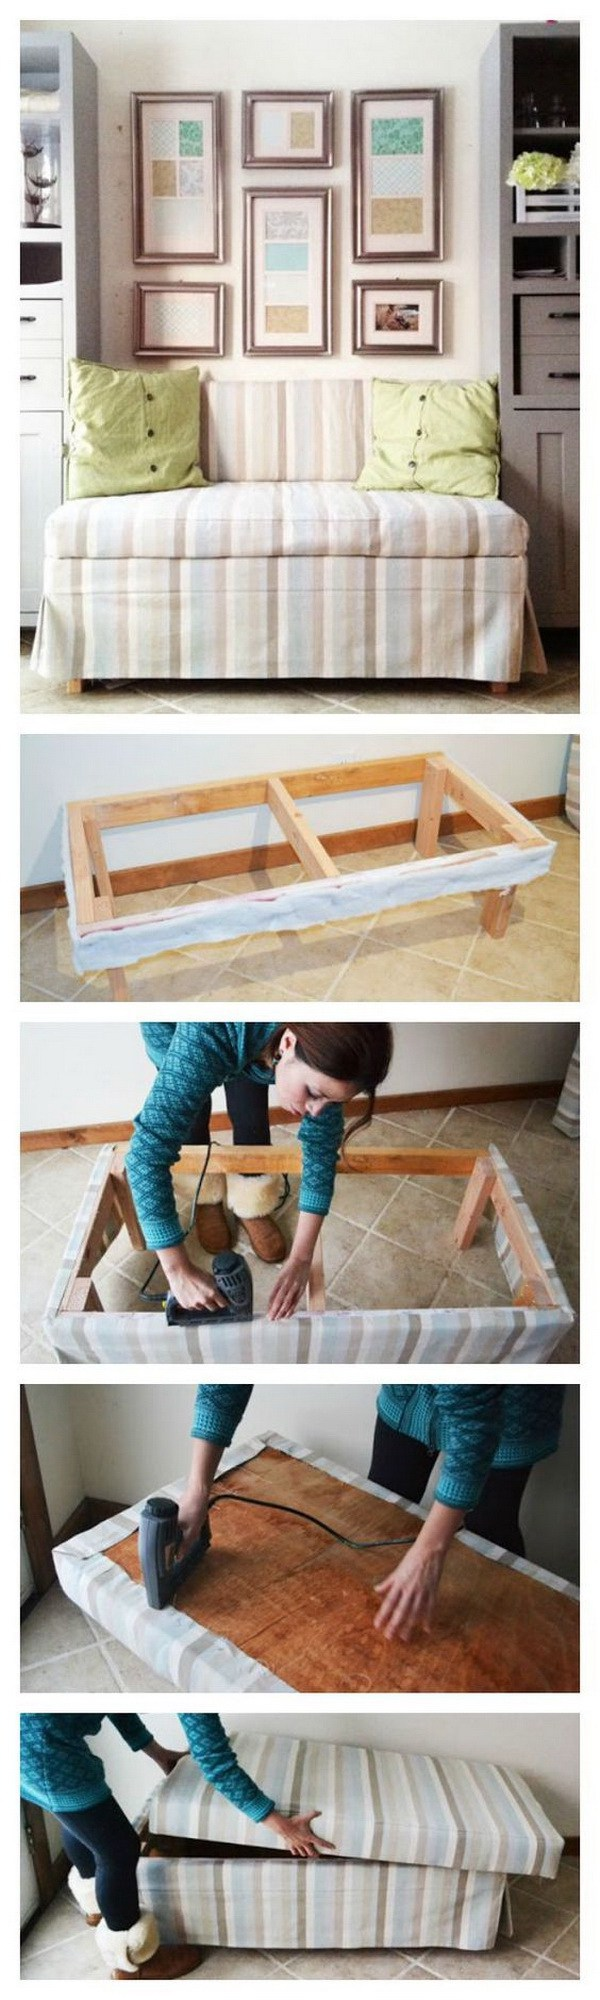 51 do it yourself m bel hacks zum nachmachen diy m bel zenideen. Black Bedroom Furniture Sets. Home Design Ideas